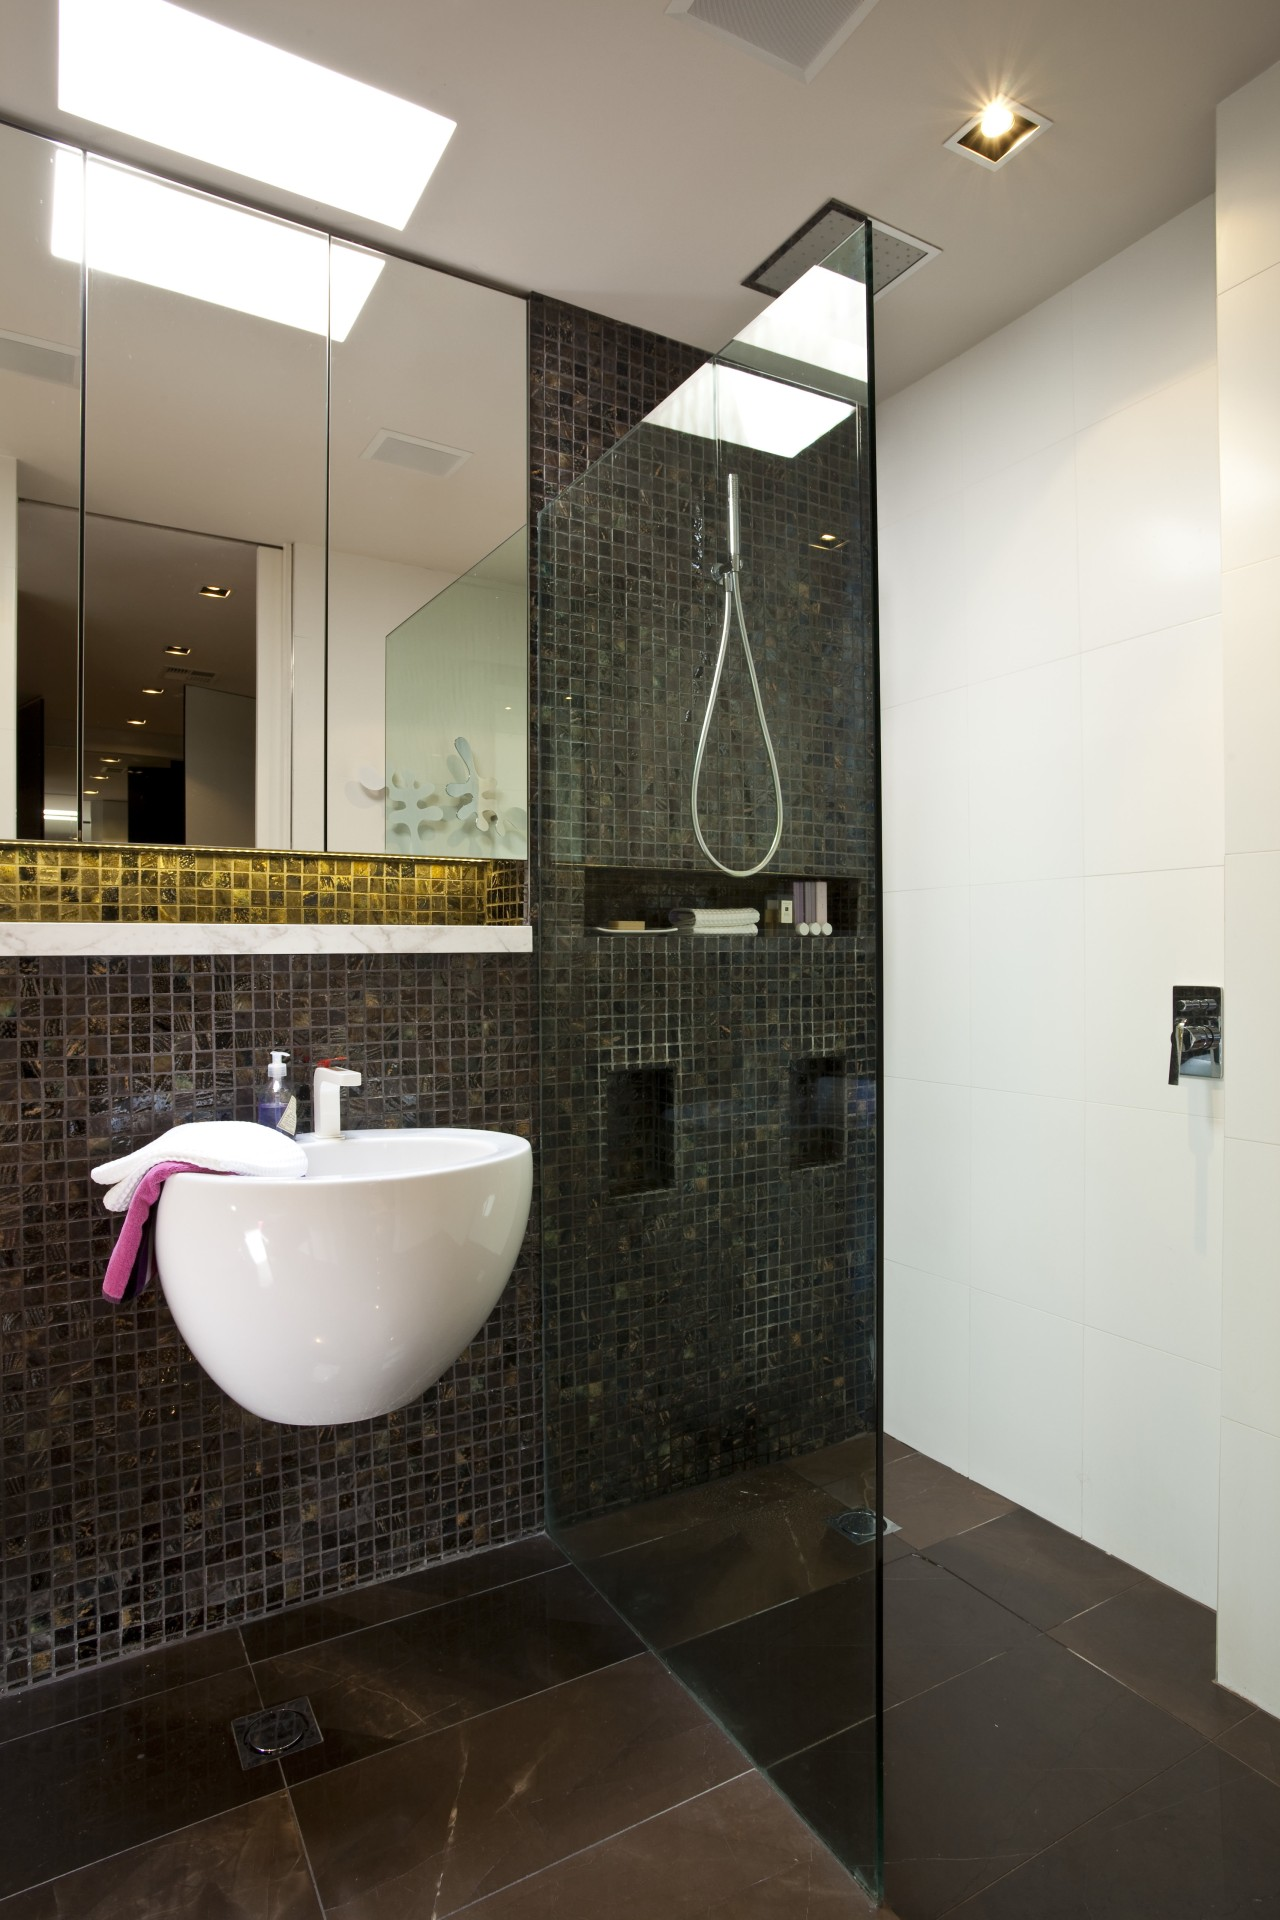 View of contemporary bathroom with dark wall tiles architecture, bathroom, ceiling, floor, flooring, interior design, plumbing fixture, room, sink, tile, wall, black, white